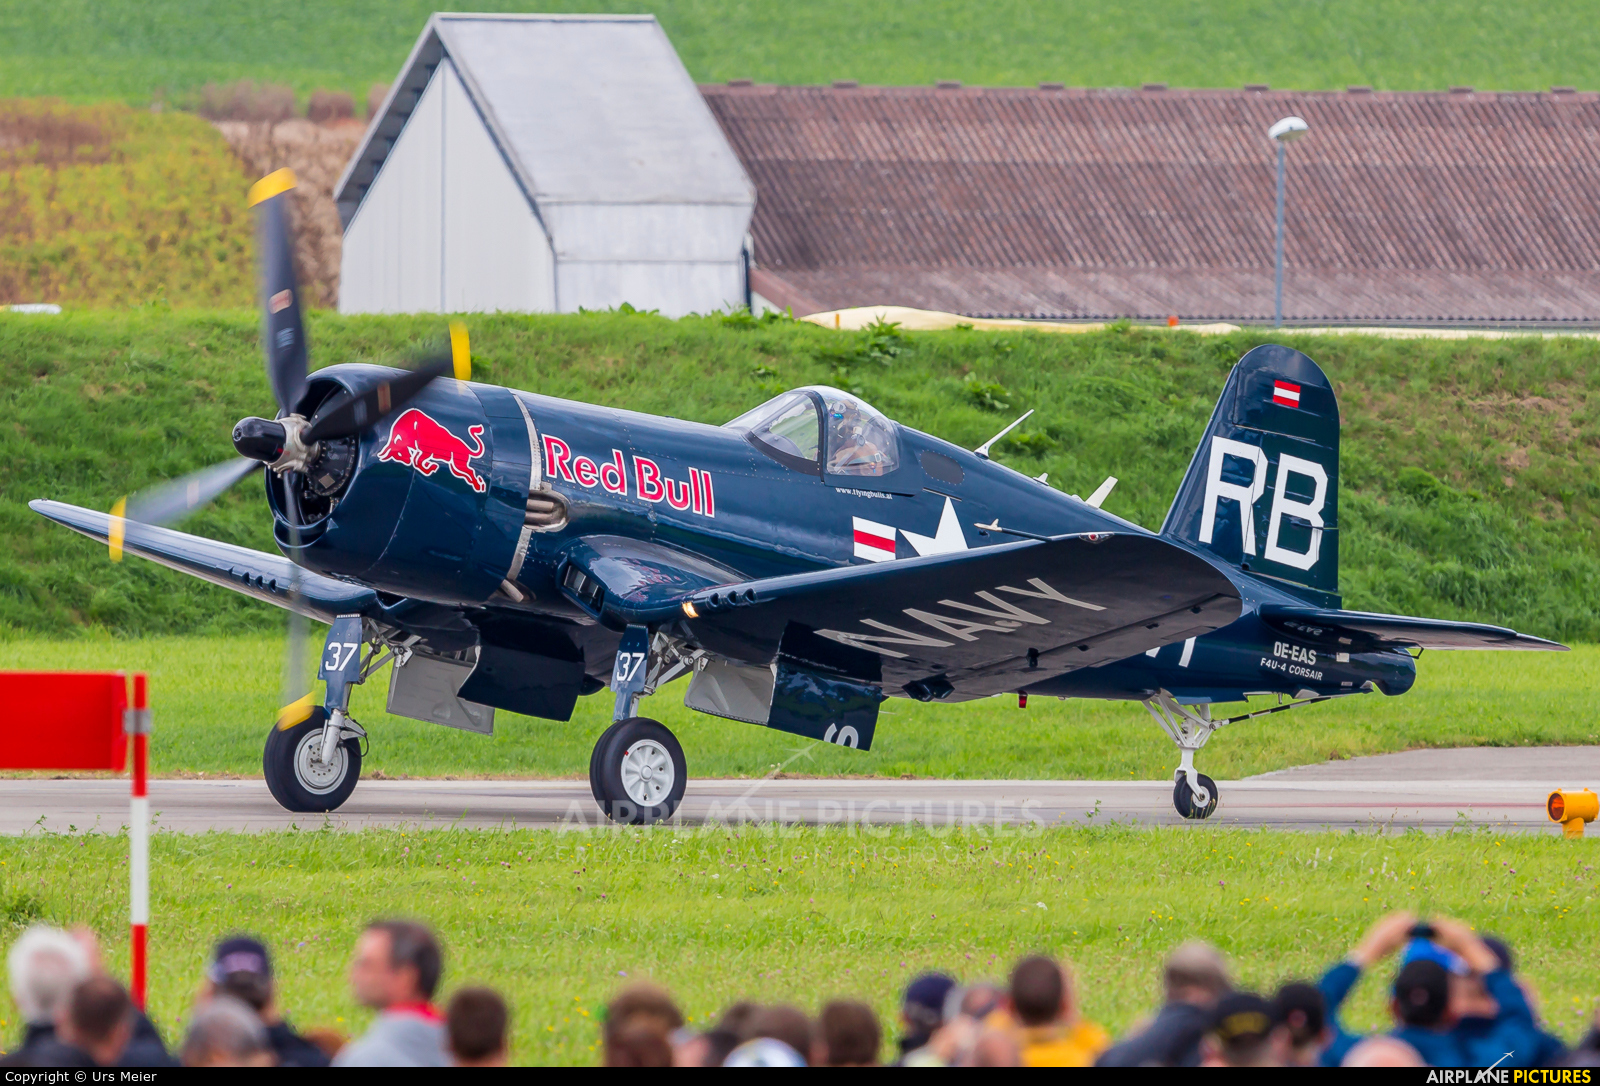 Red Bull OE-EAS aircraft at Payerne